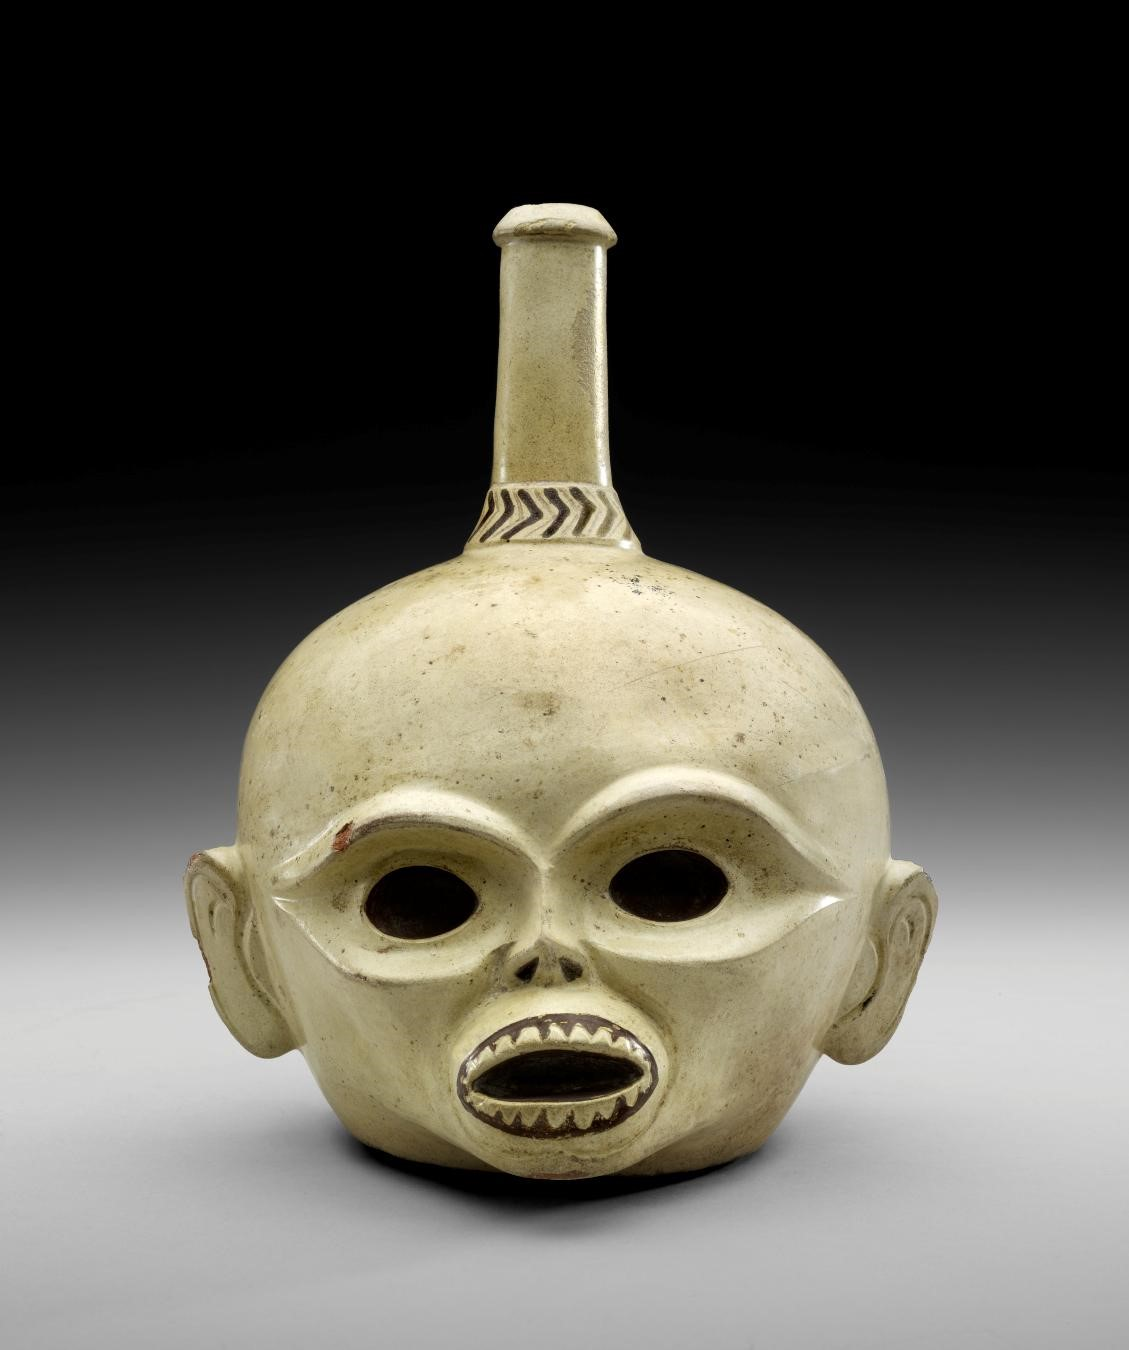 FOR HALLOWEEN 2016 BLOG ONLY - Moche